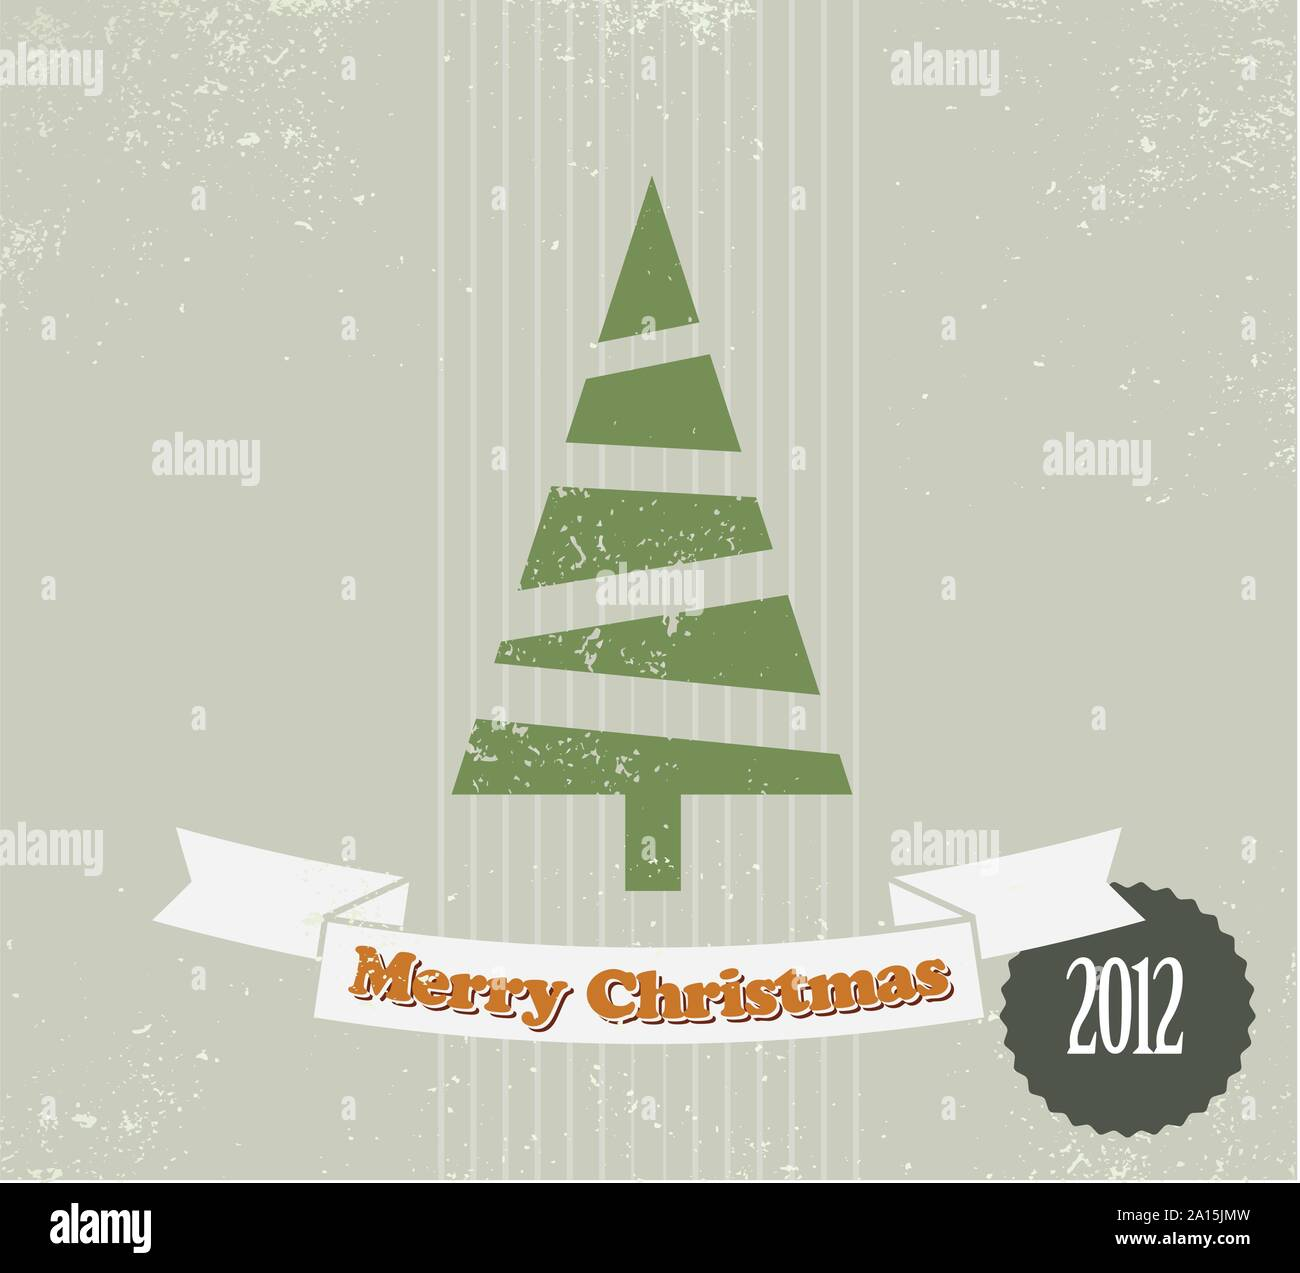 Simple Vintage Vector Retro Christmas Card With Christmas Tree Stock Vector Image Art Alamy